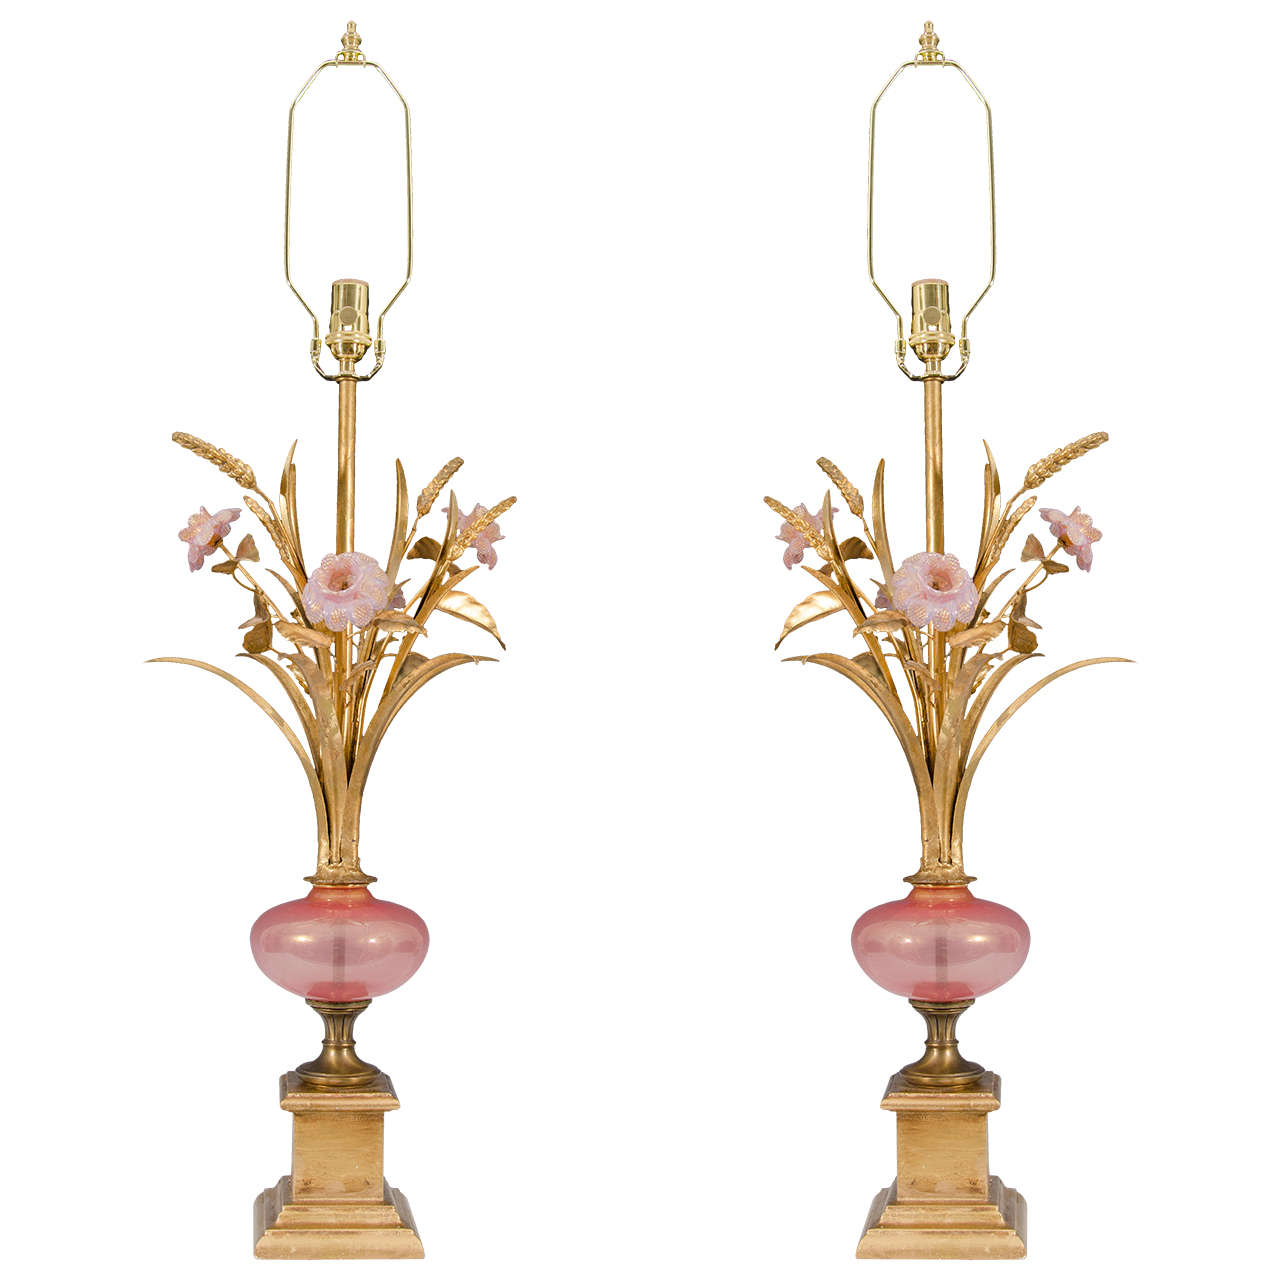 Midcentury Pair of Murano Glass Table Lamps with Pink Flowers at